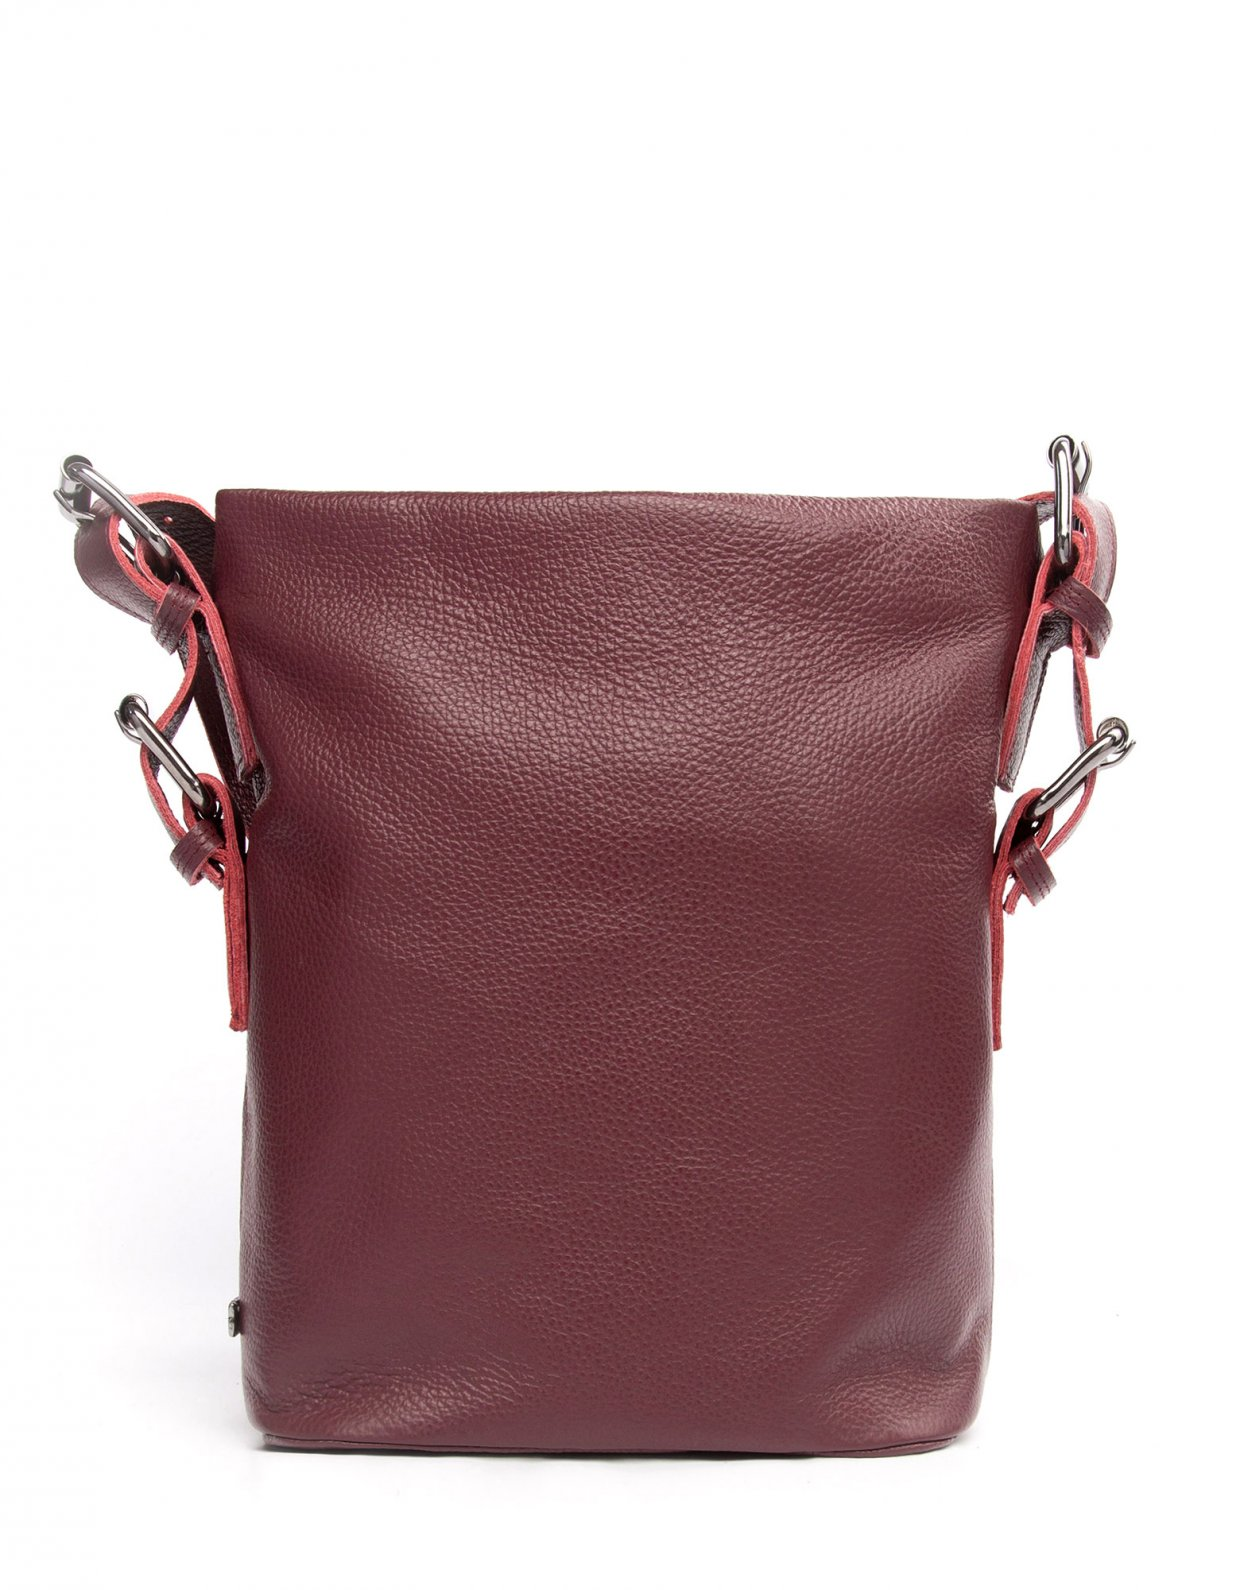 Elena Athanasiou Day to evening pouch large burgundy